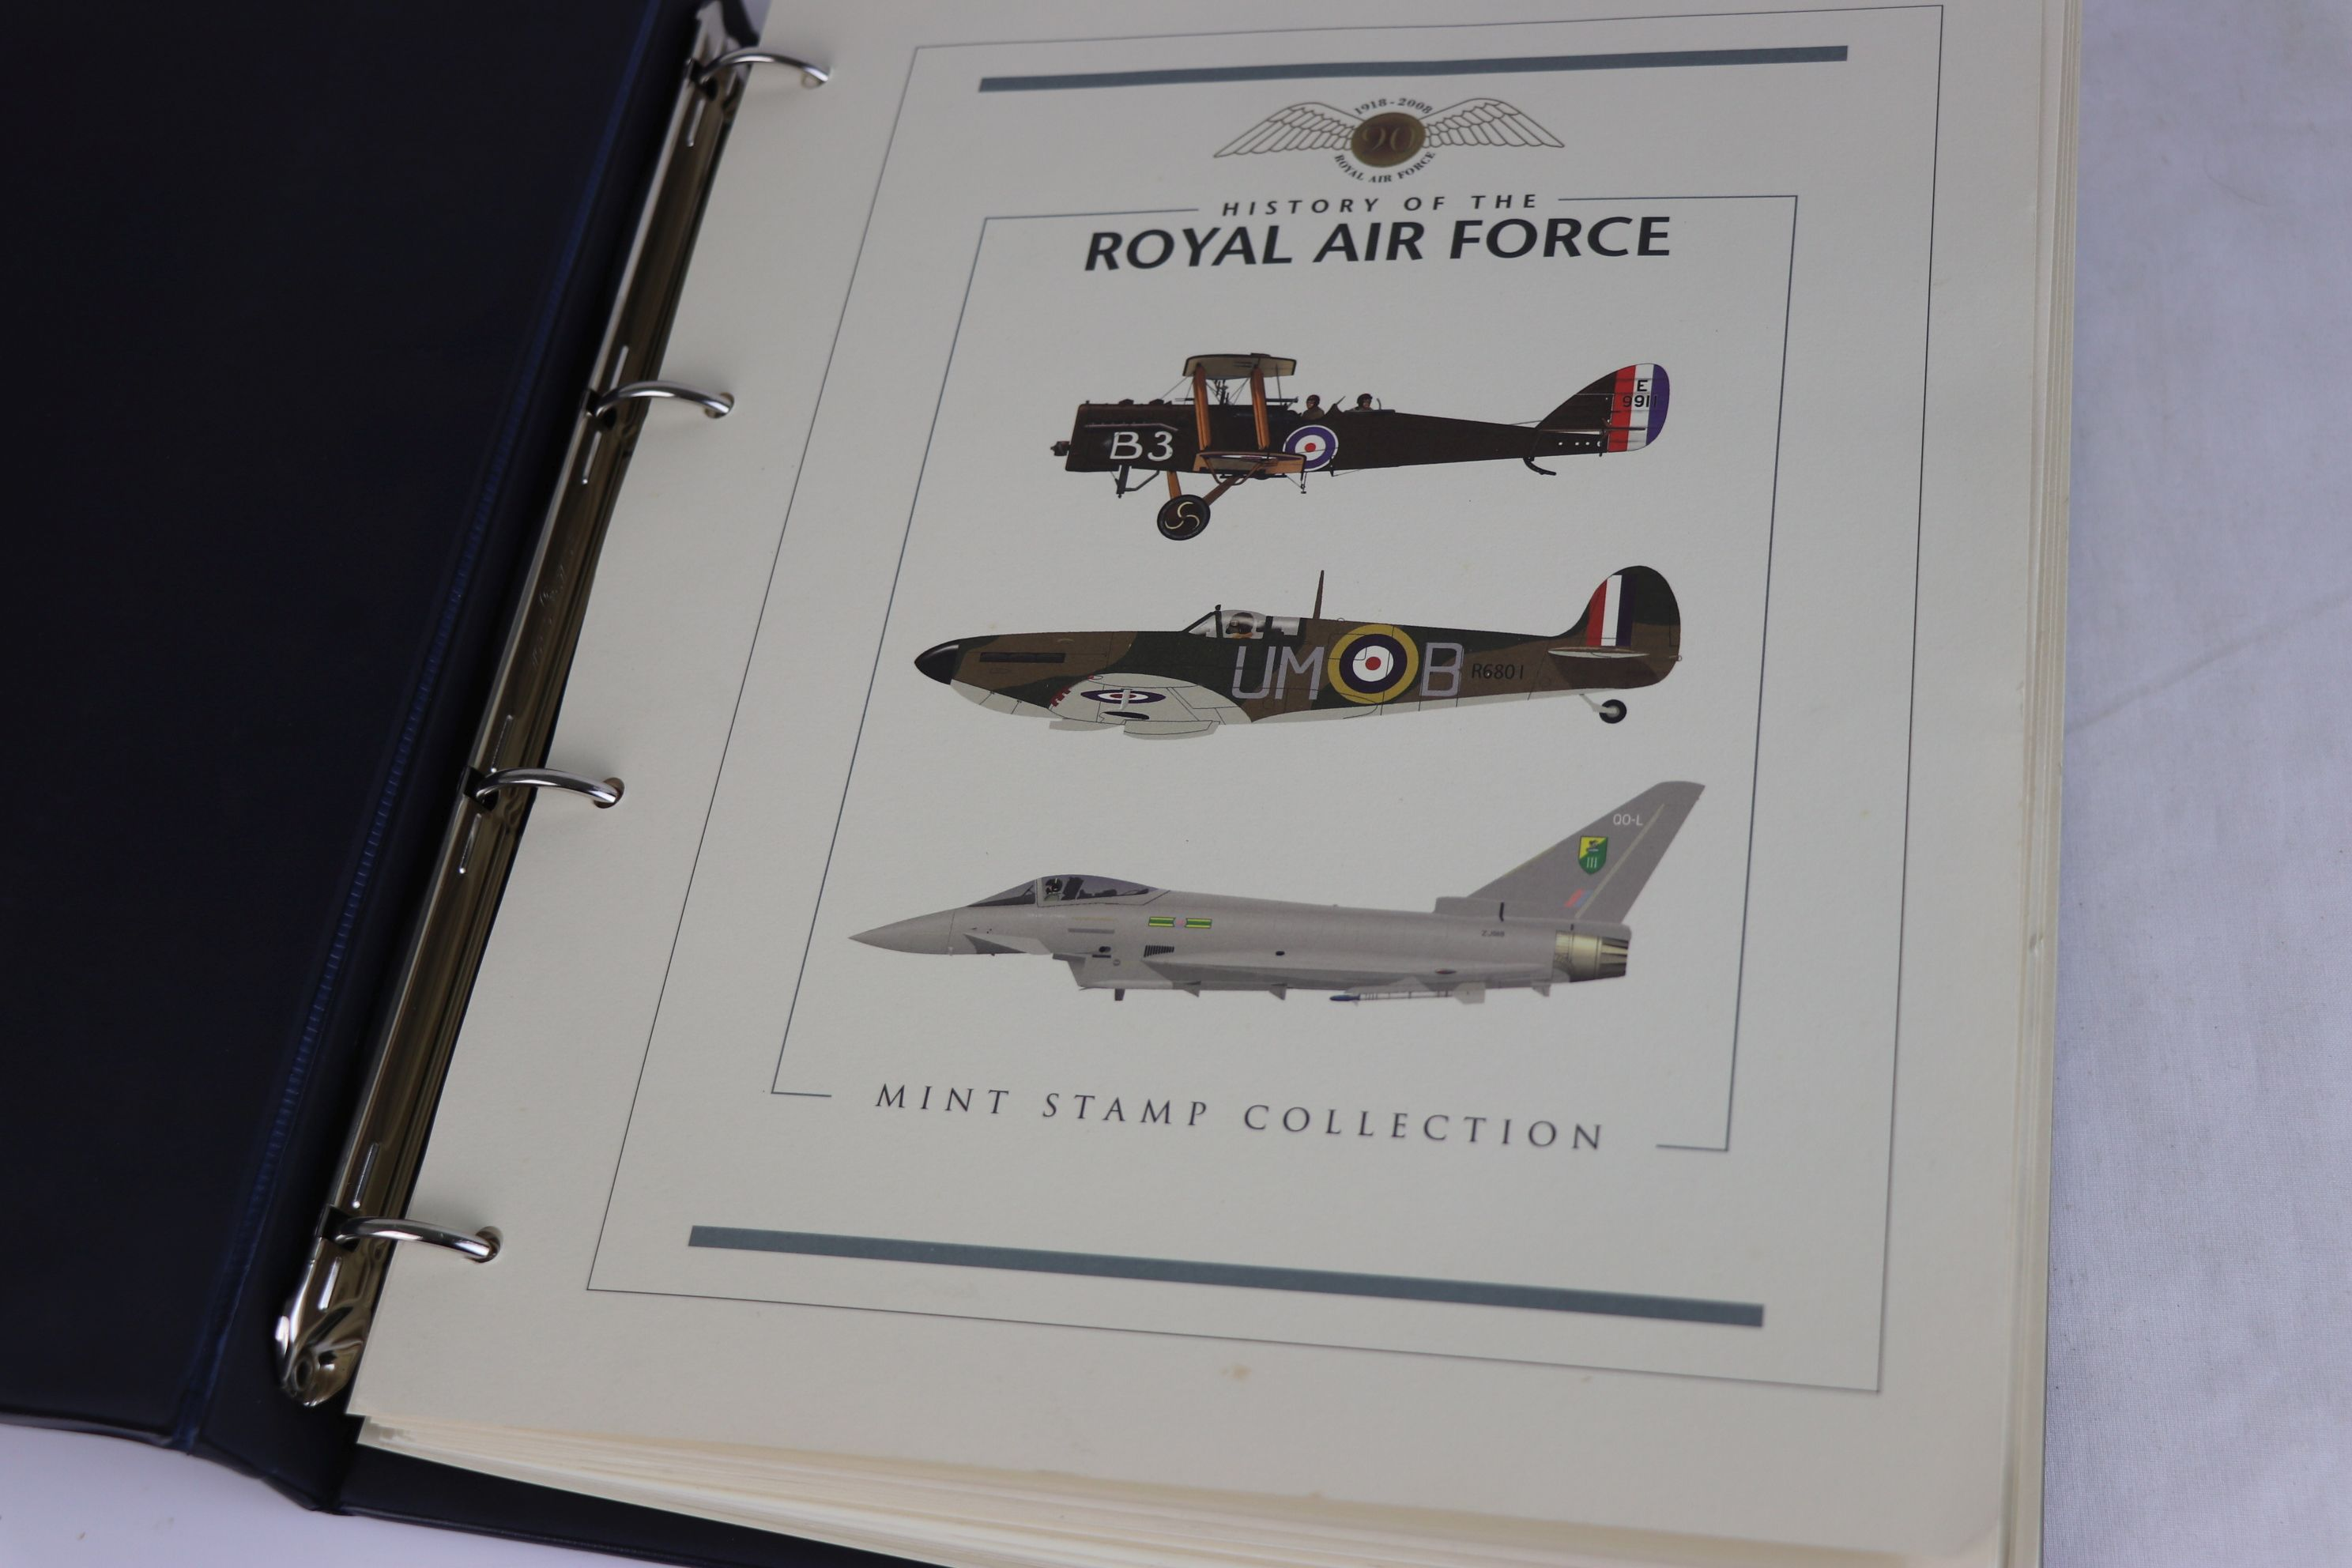 A limited edition Westminster Mint History of the Royal Air Force coin and stamp cover collection to - Image 2 of 16